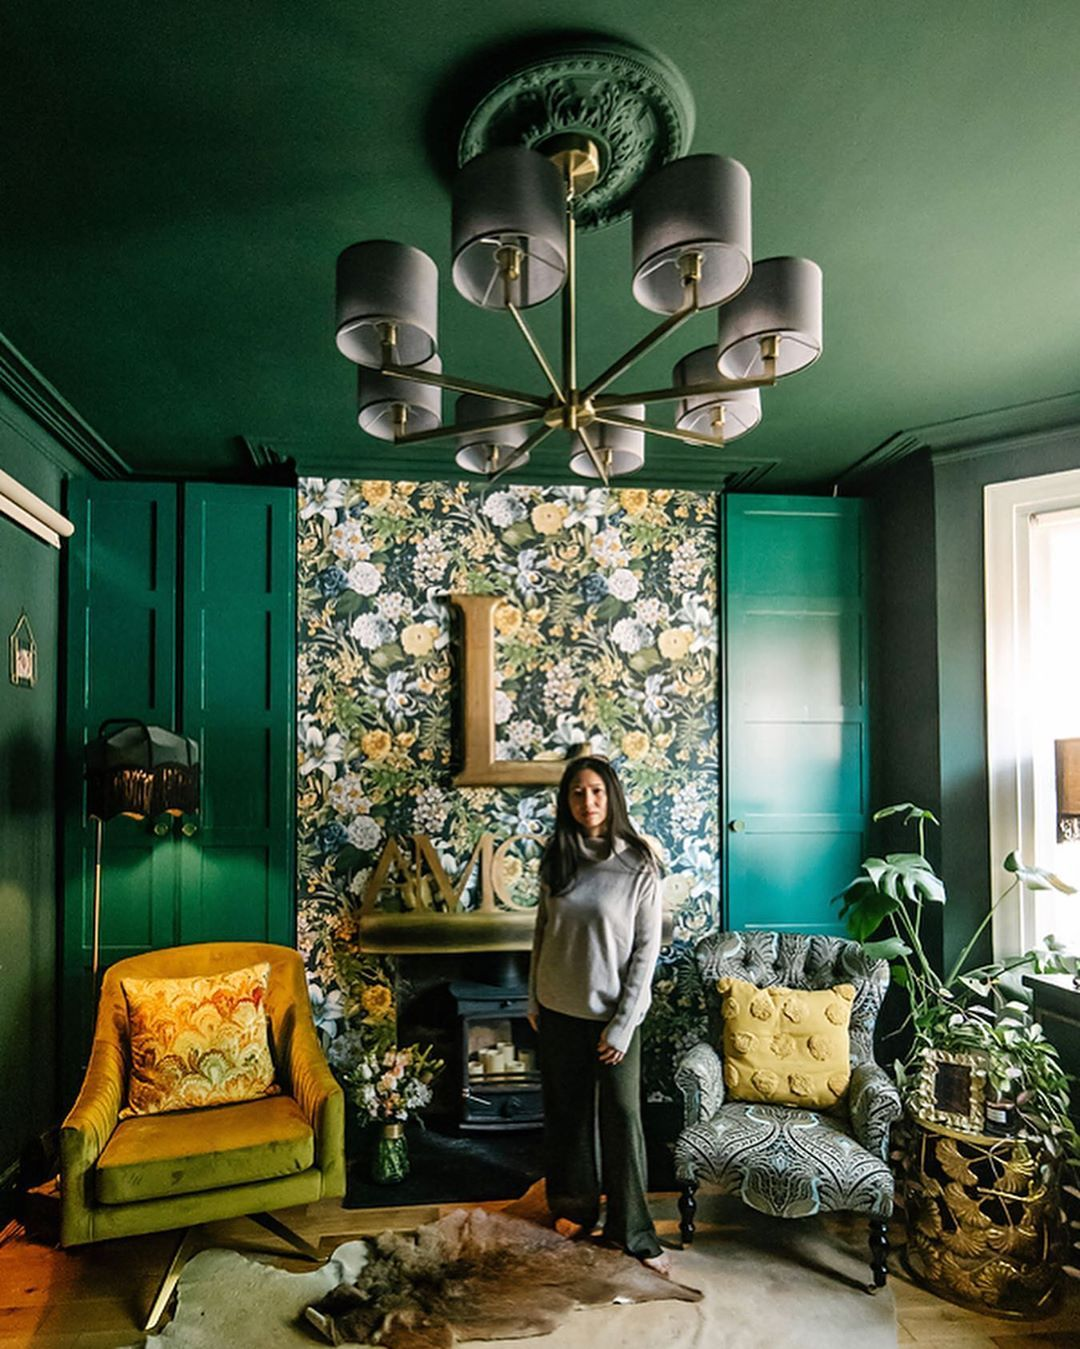 Lily Sawyer Has Transformed This Original Victorian Property Built In 1896 Into Colorful Patterned Design Pla In 2020 Dark Green Living Room Living Room Green Interior